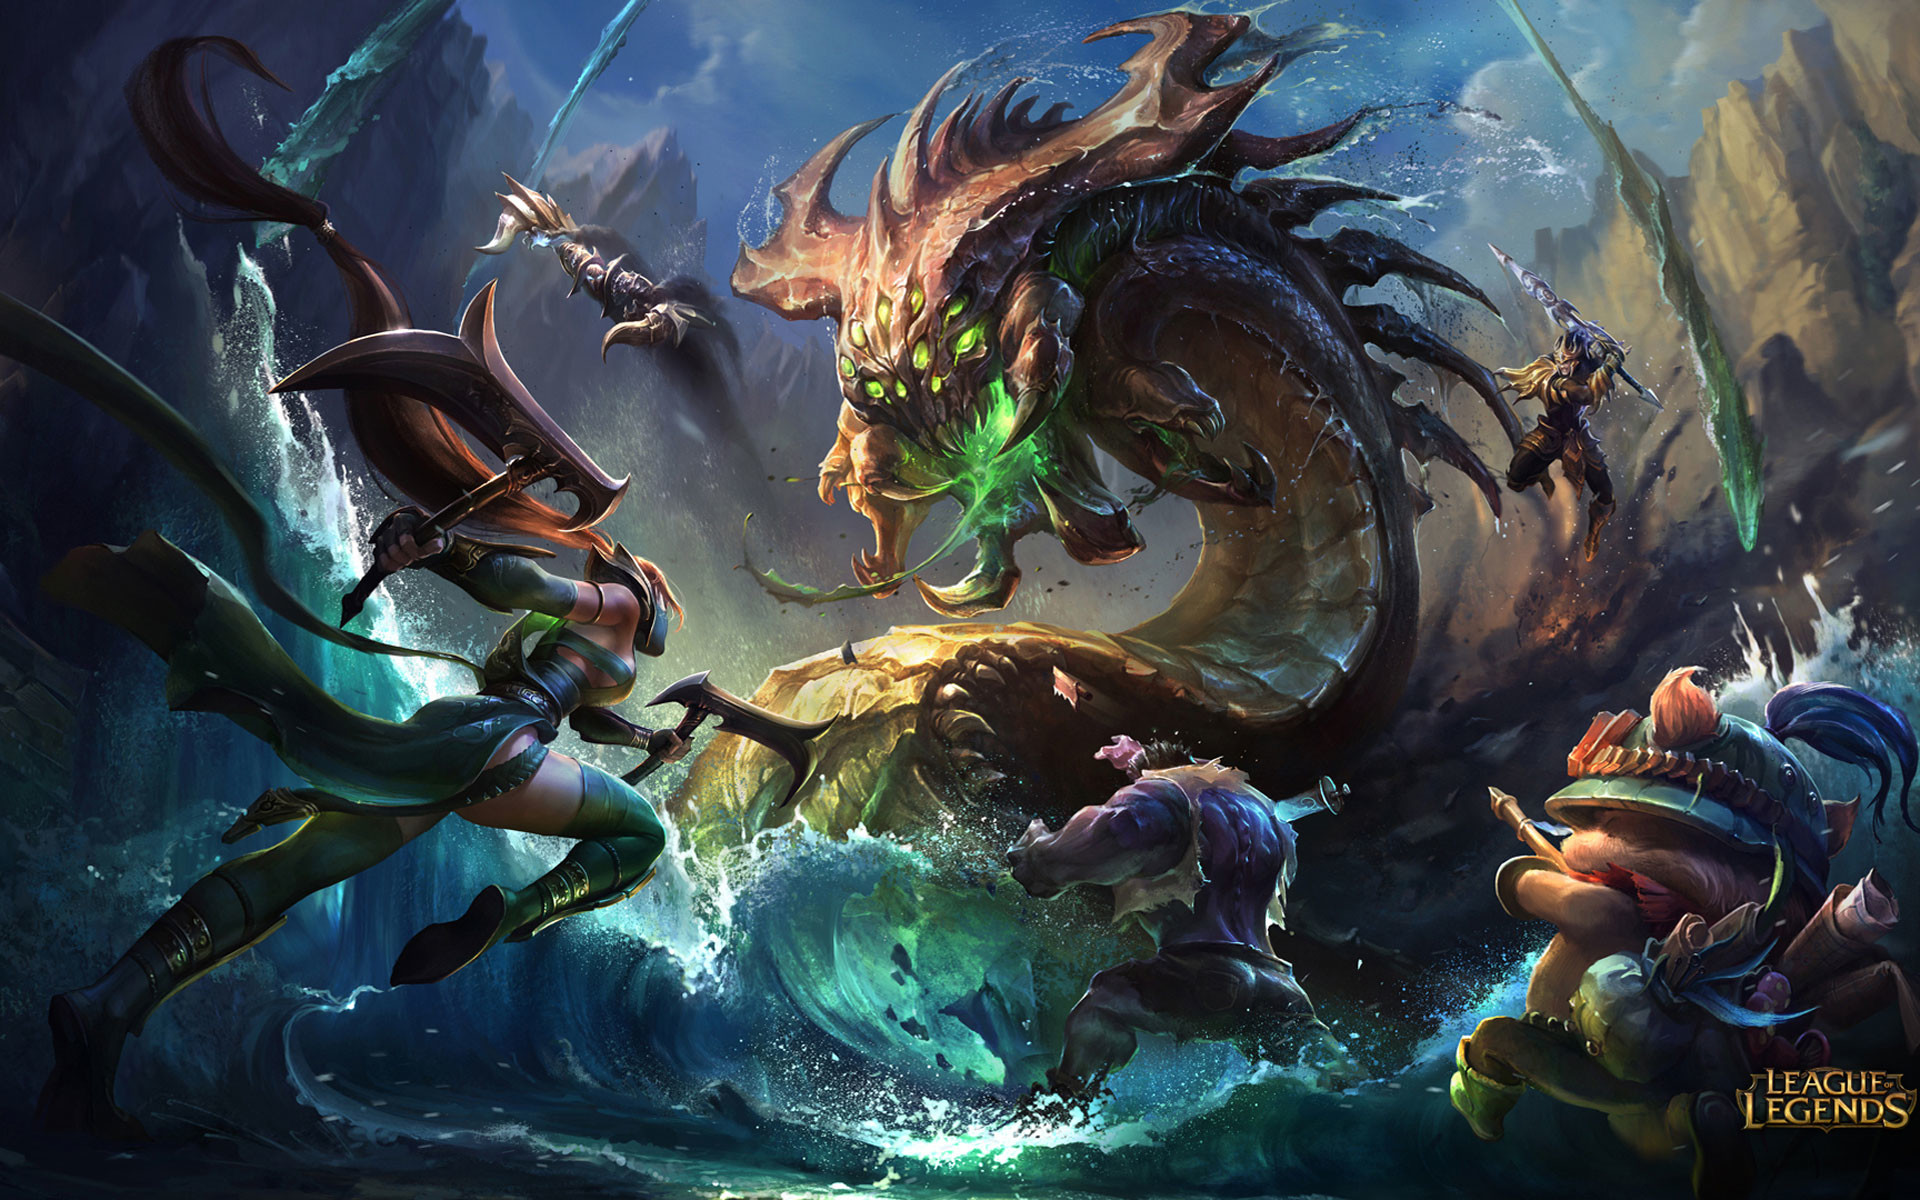 1920x1200 Yasuo League of Legends Wallpaper, Yasuo Desktop Wallpaper 1920×1200 League  Of Legend Wallpapers